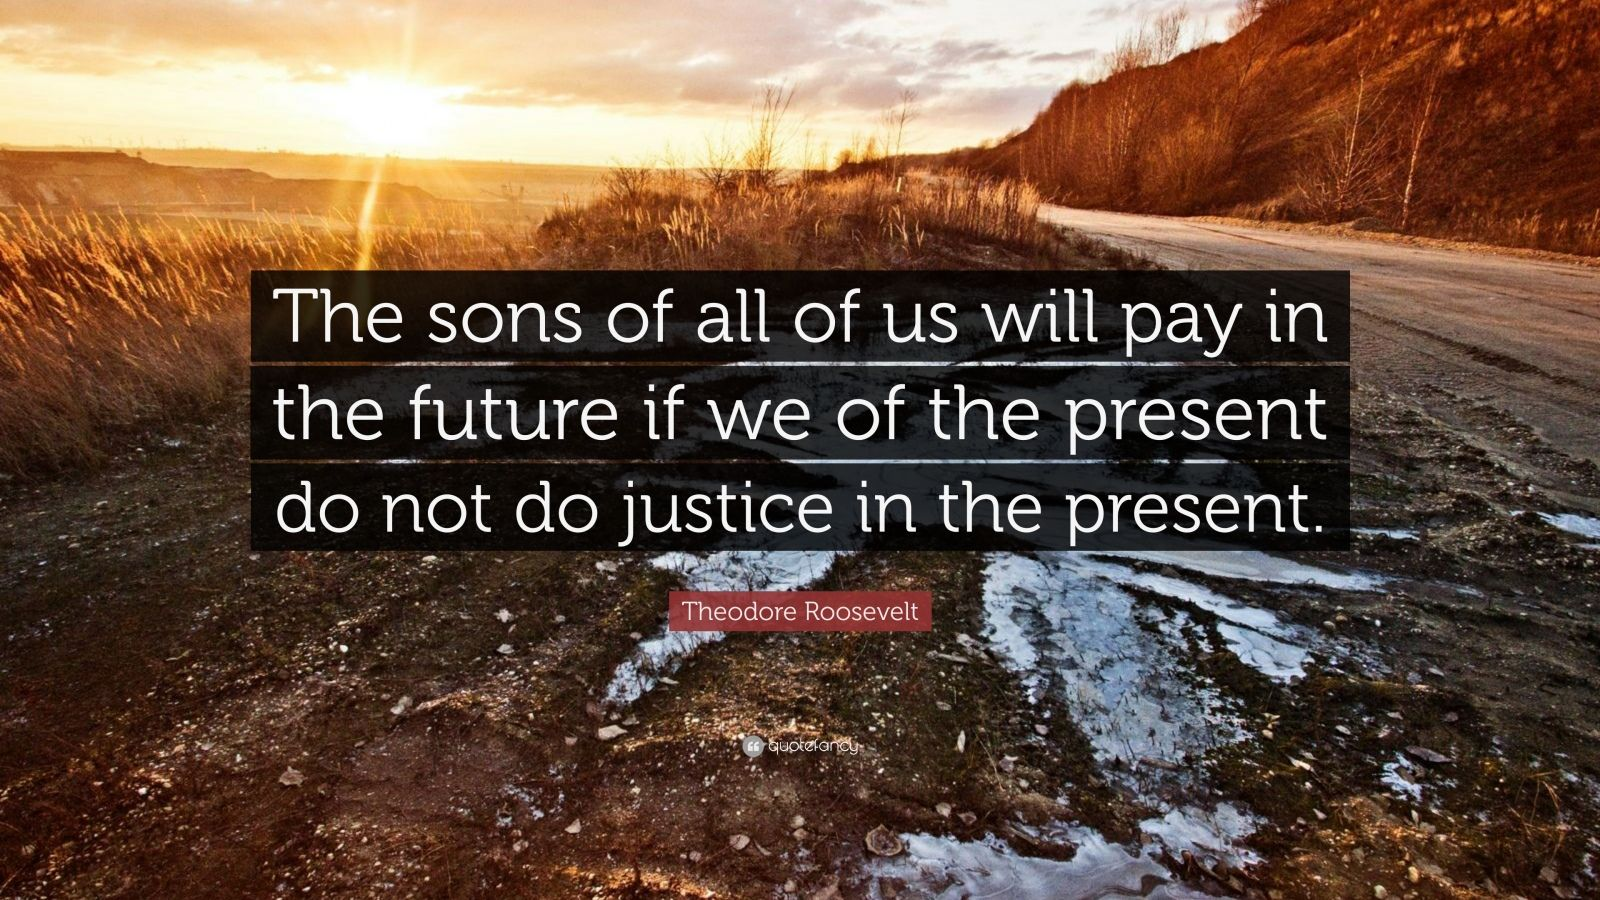 """Theodore Roosevelt Quote: """"The sons of all of us will pay in the future if we of the present do not do justice in the present."""""""